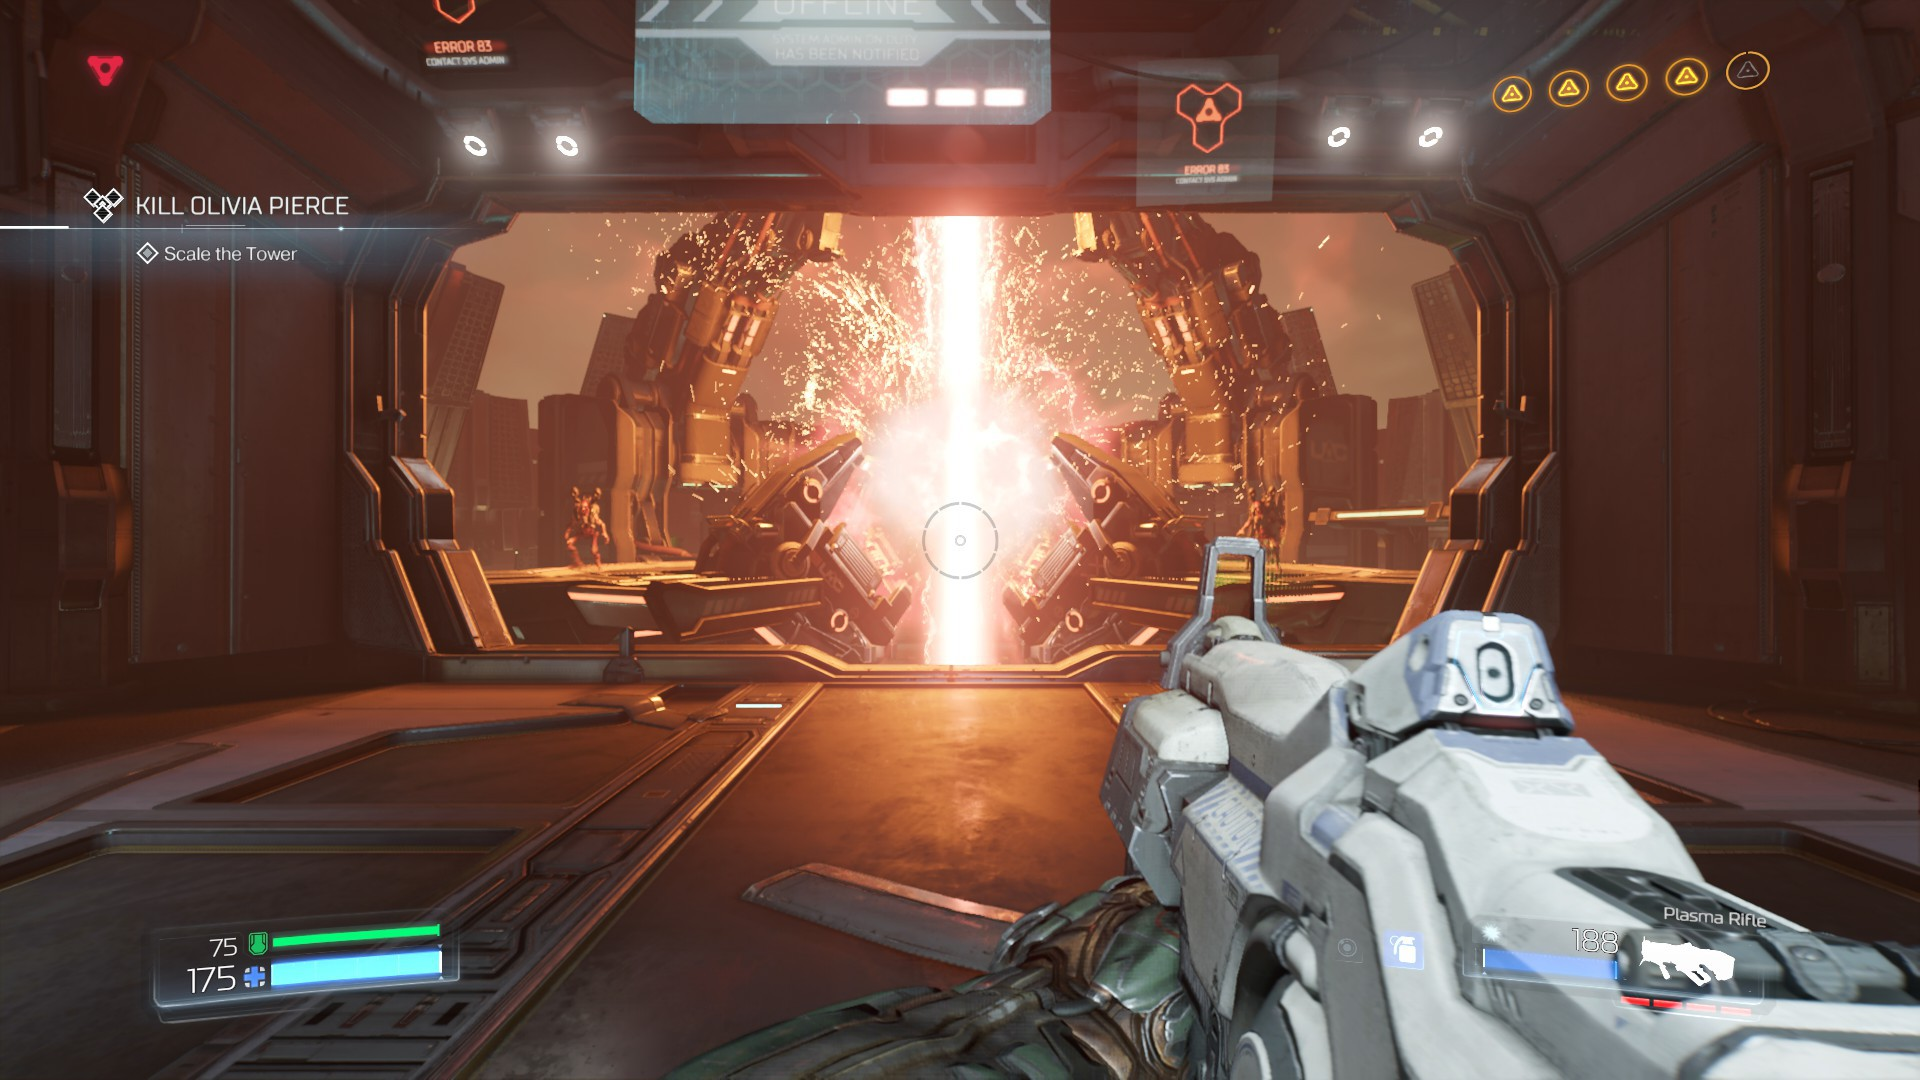 DOOM New Update To Launch On June 30th On All Formats, Full Notes